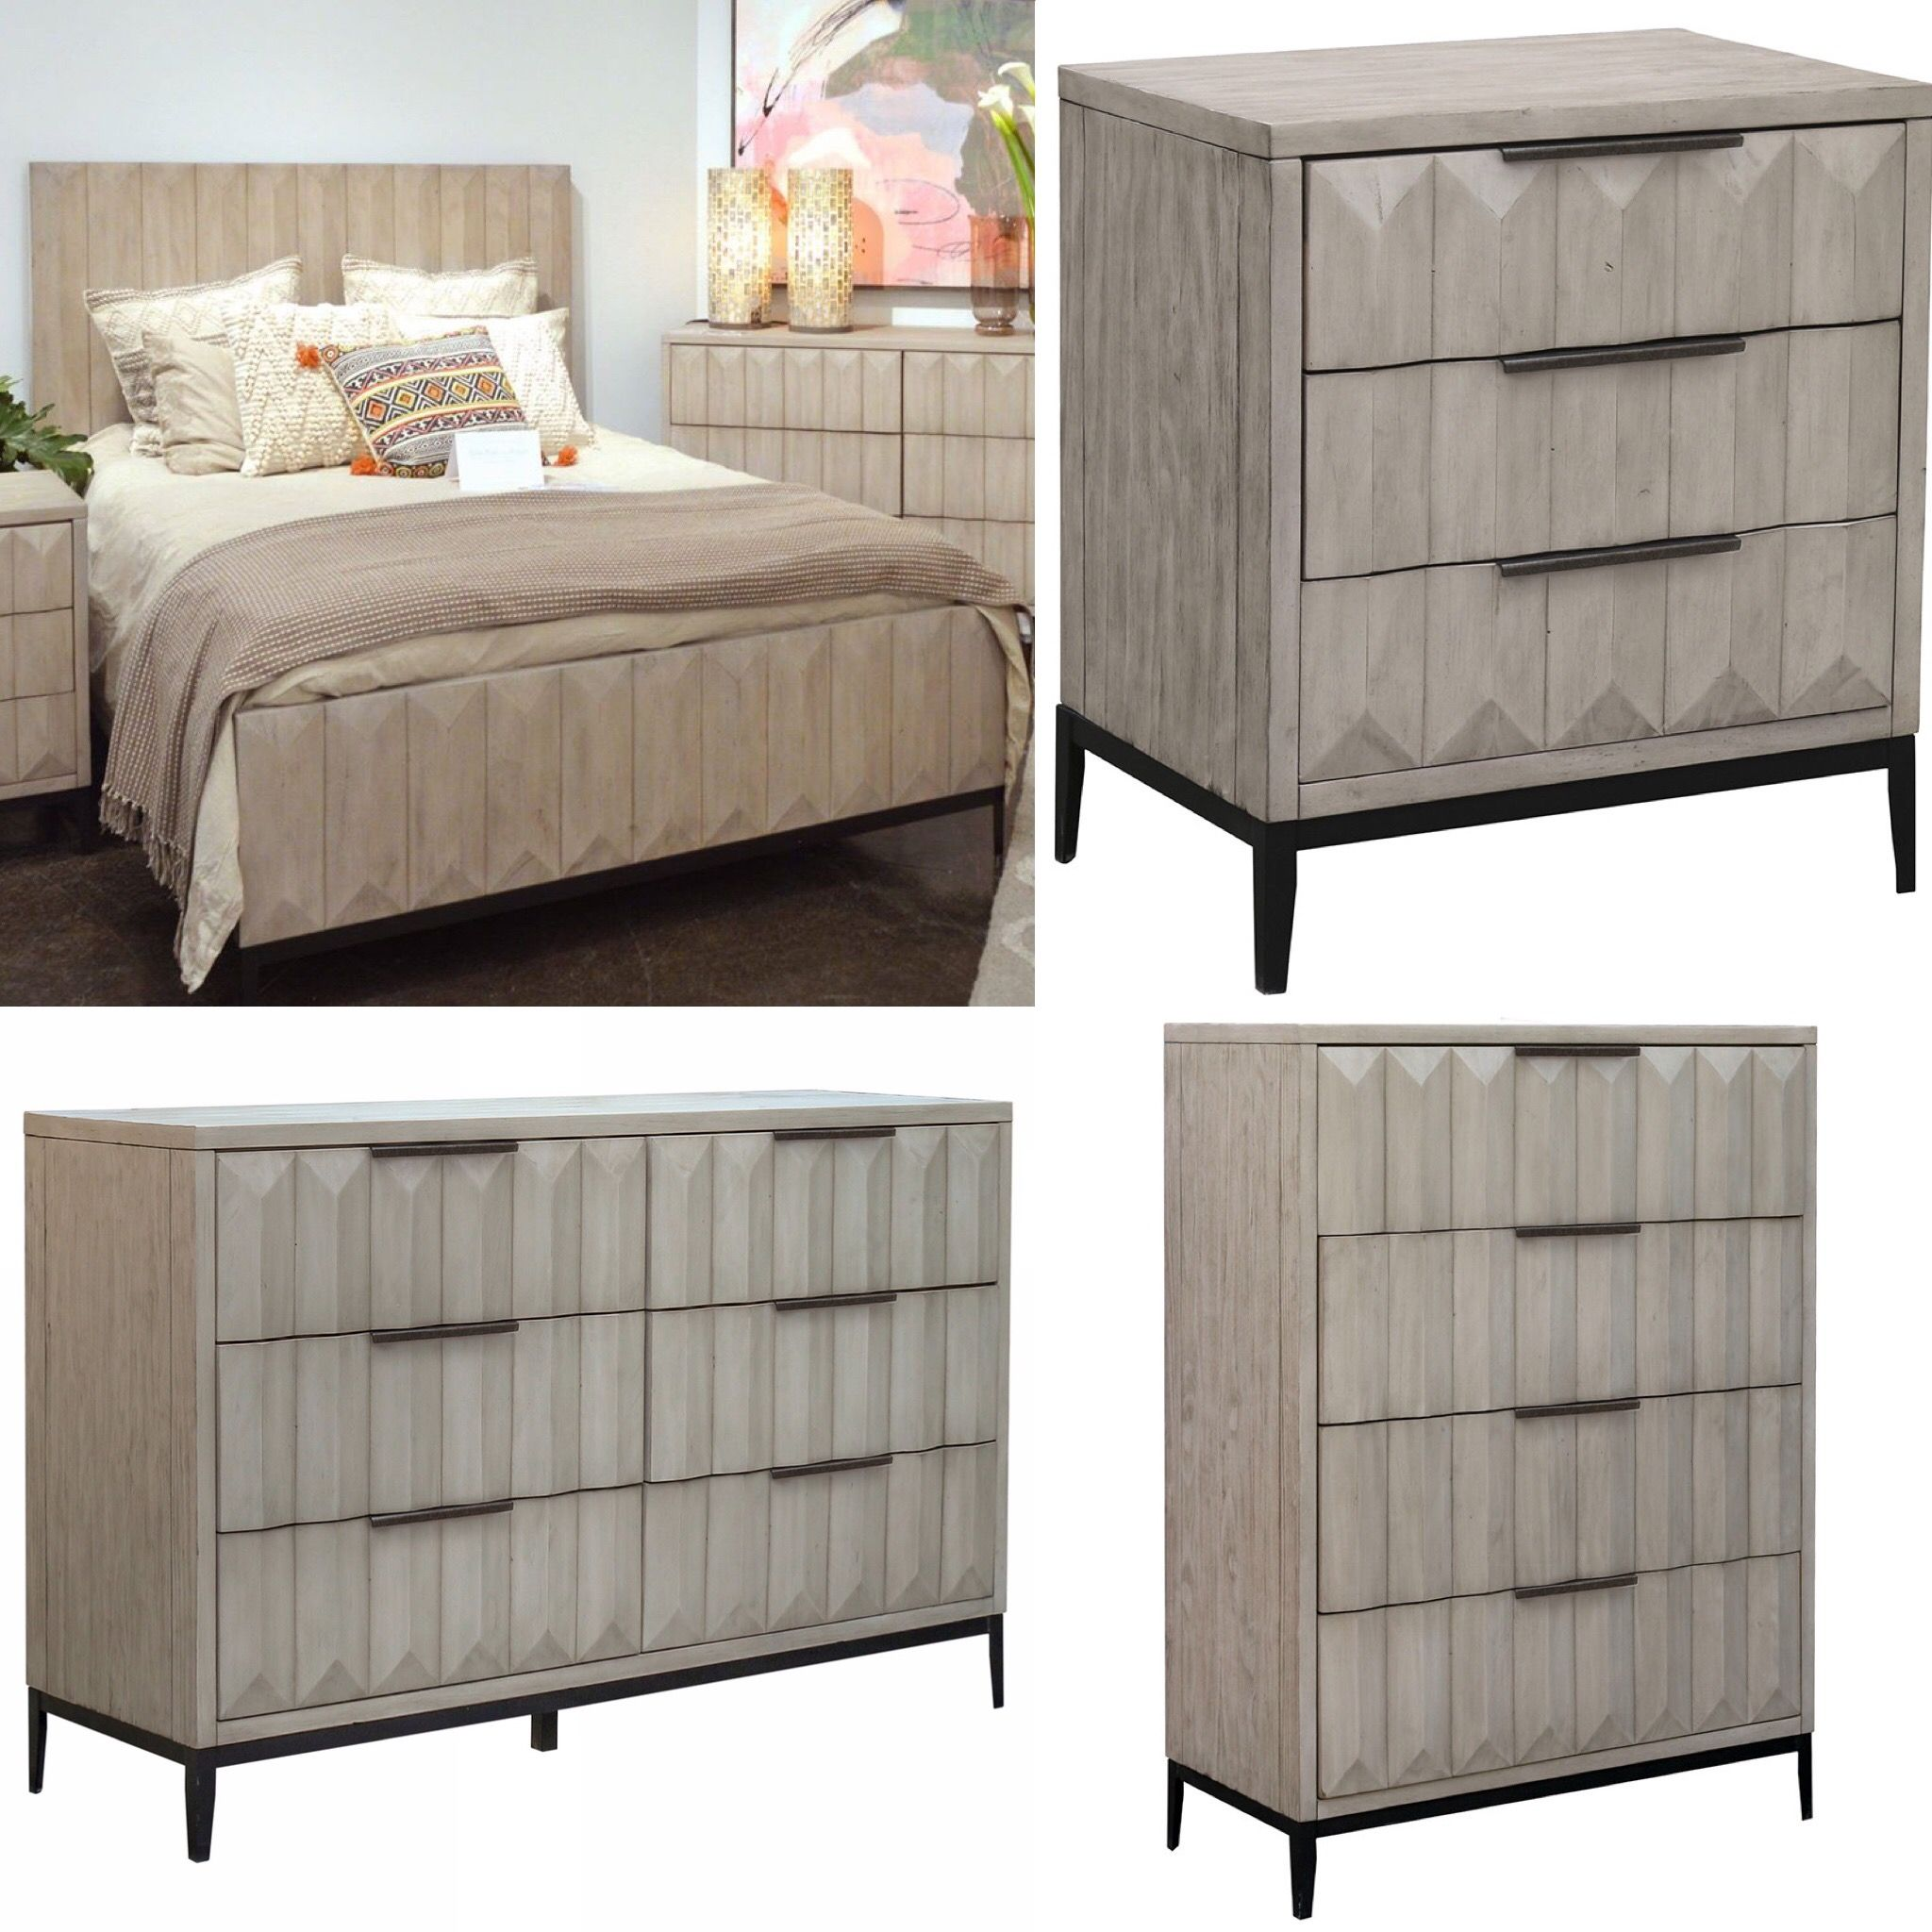 New arrival! This bedroom set features solid pine wood